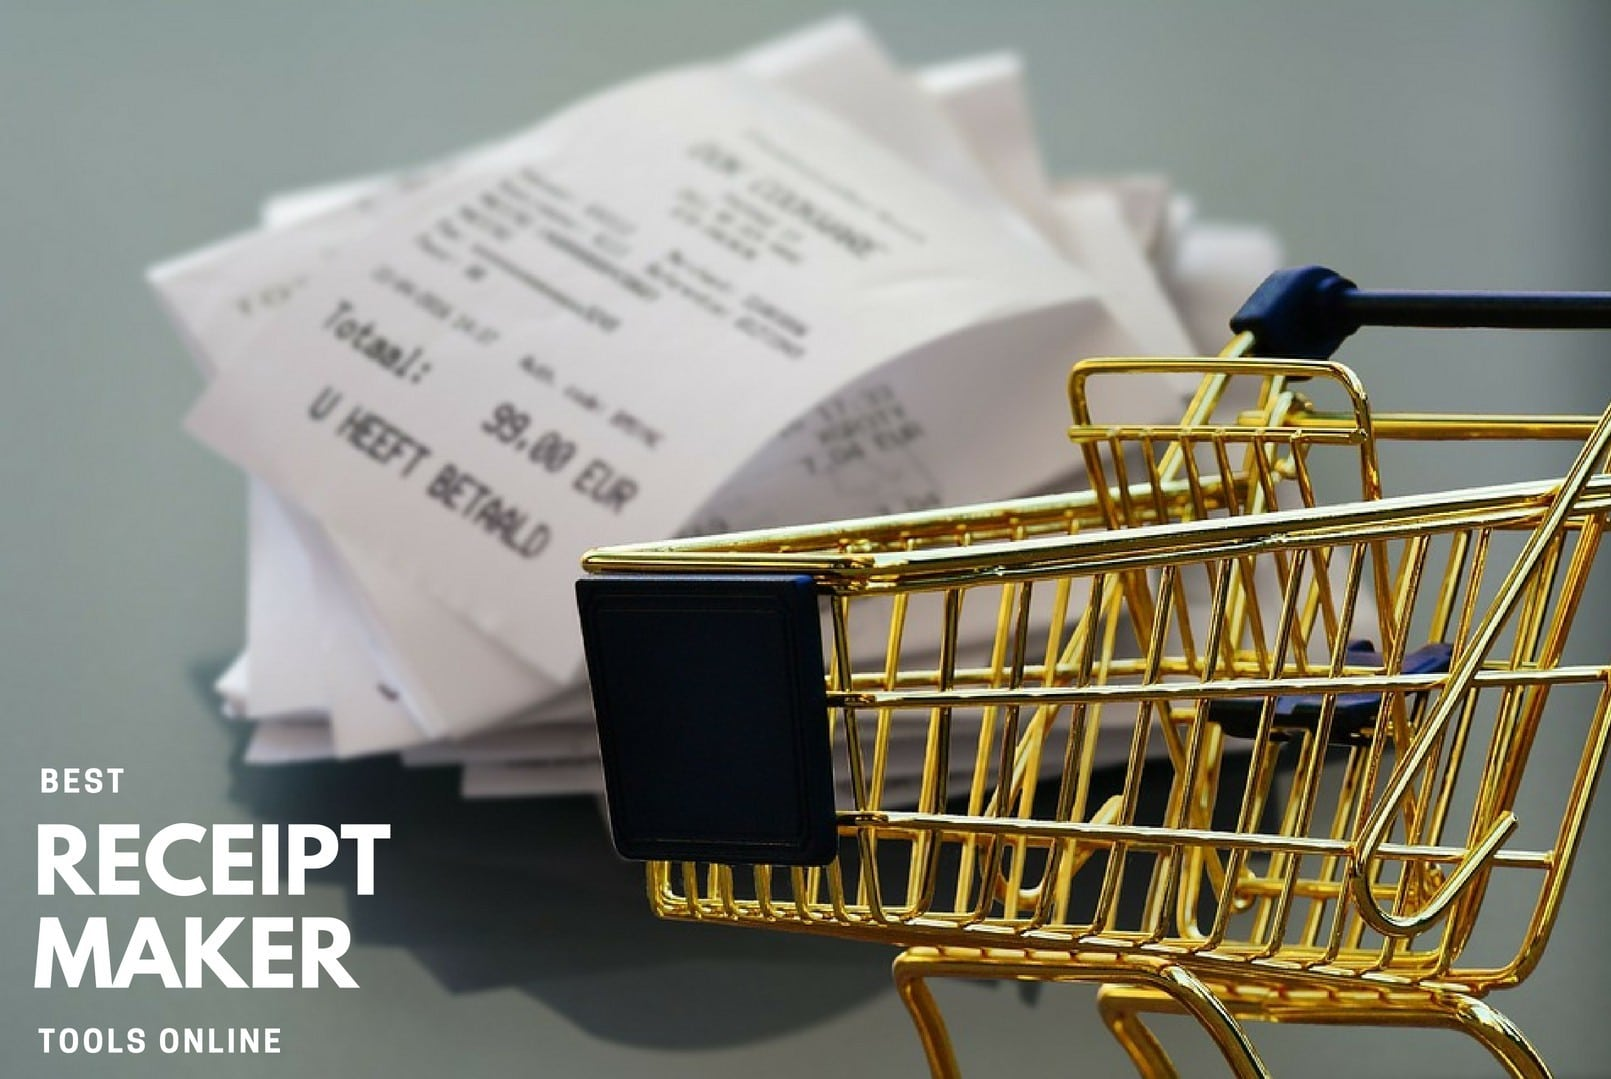 Online Fake Receipt MakerGenerator Tools for Free